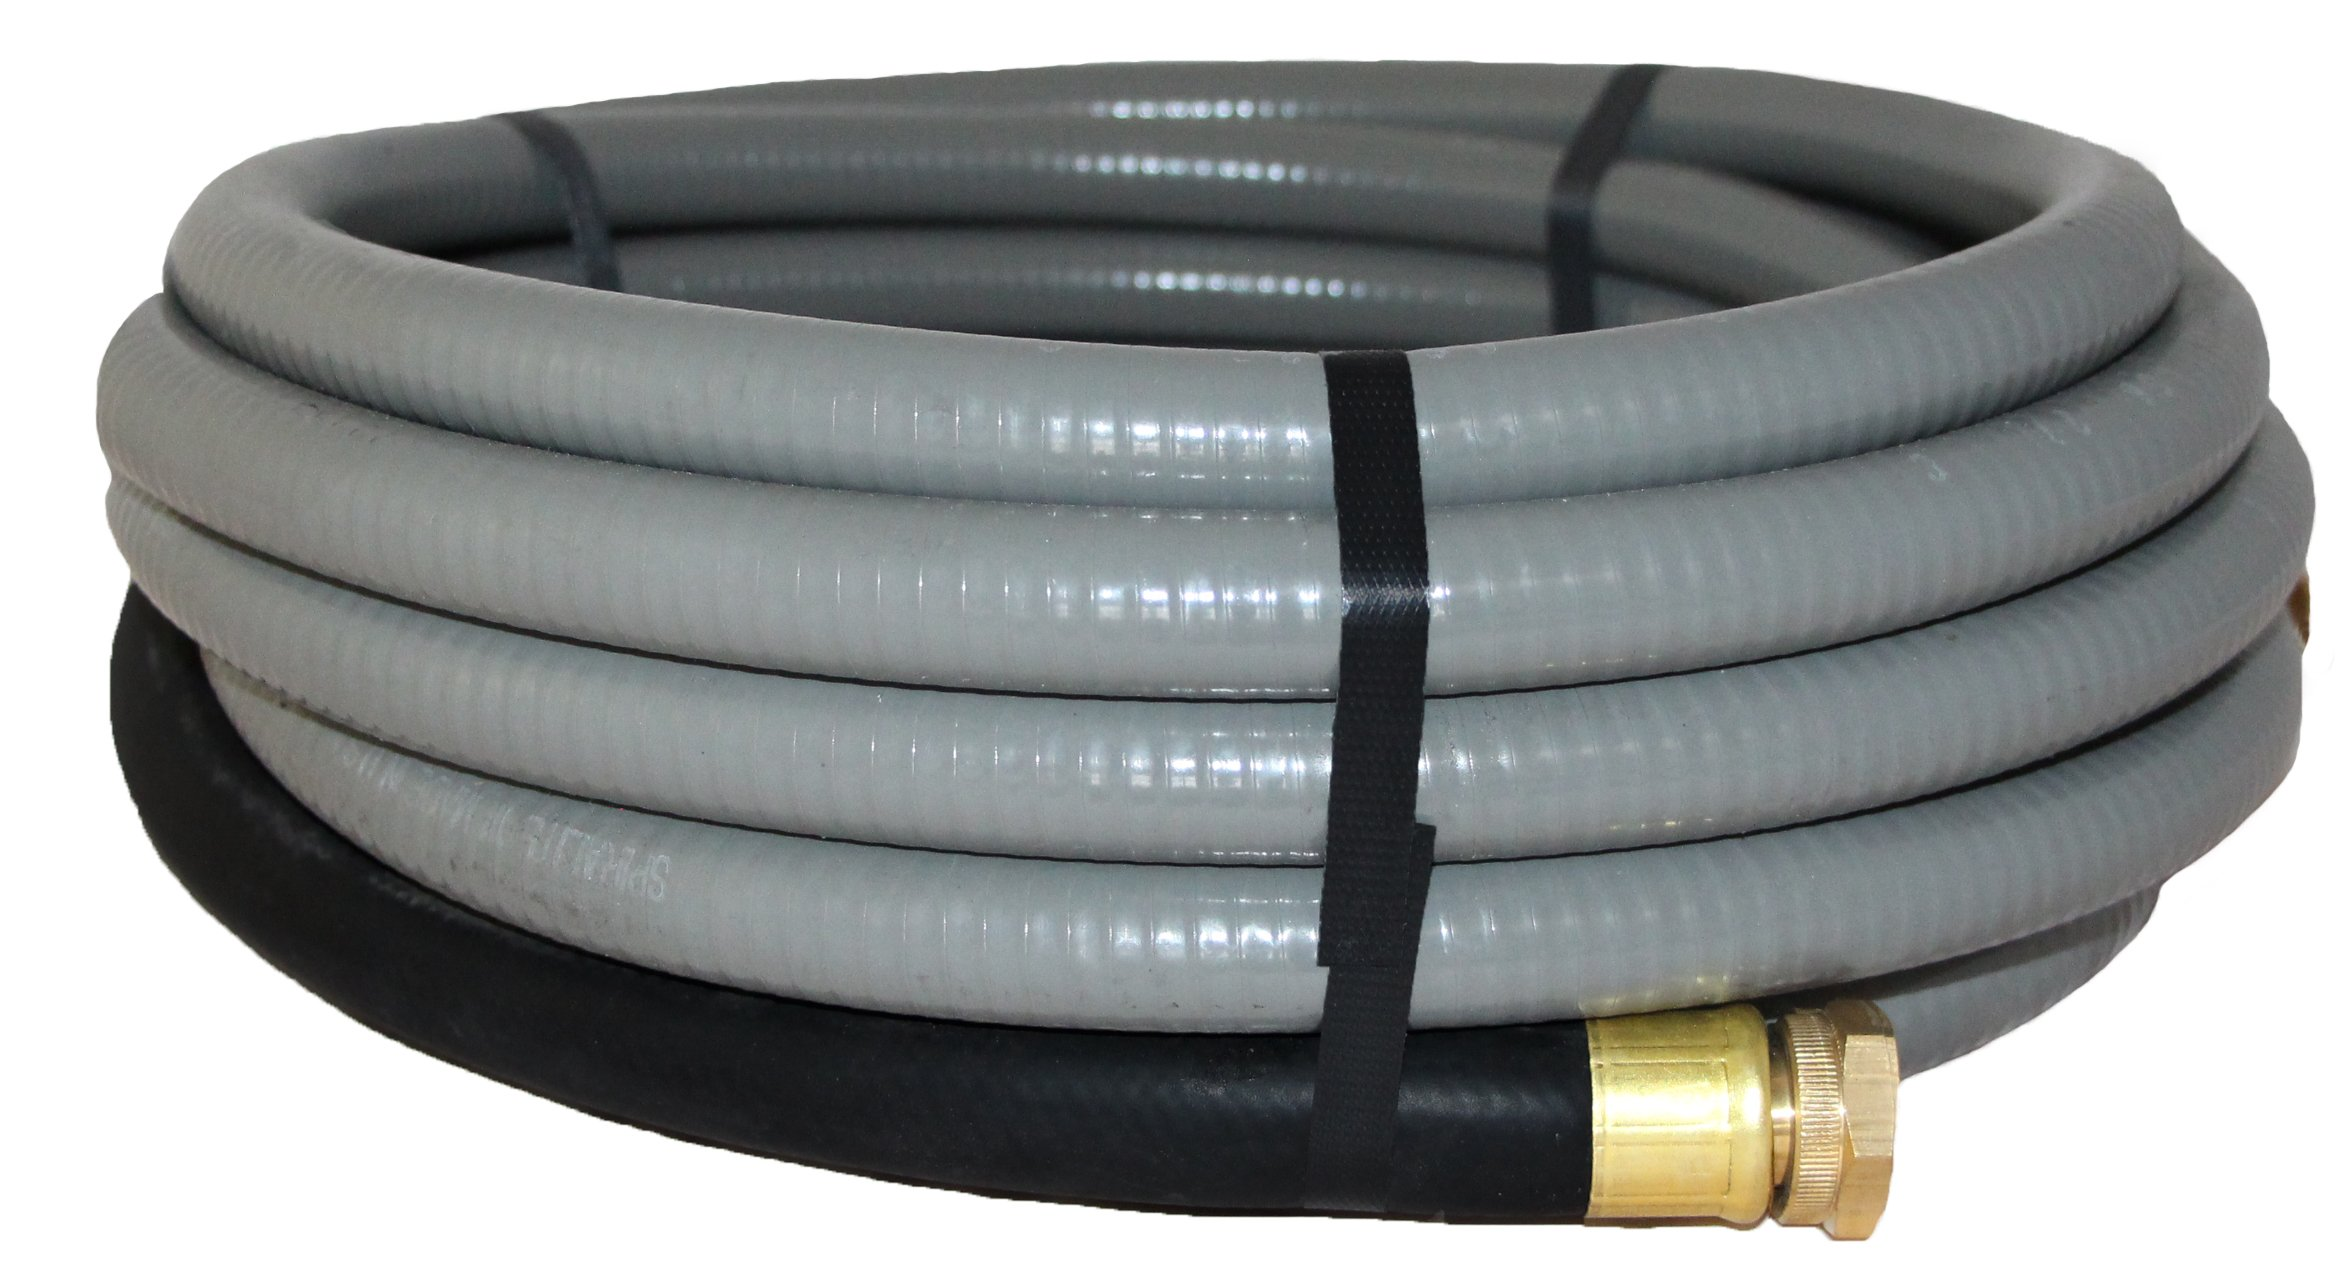 Fuji 7073 HVLP 30ft Super Duty Air Hose by Fuji Spray